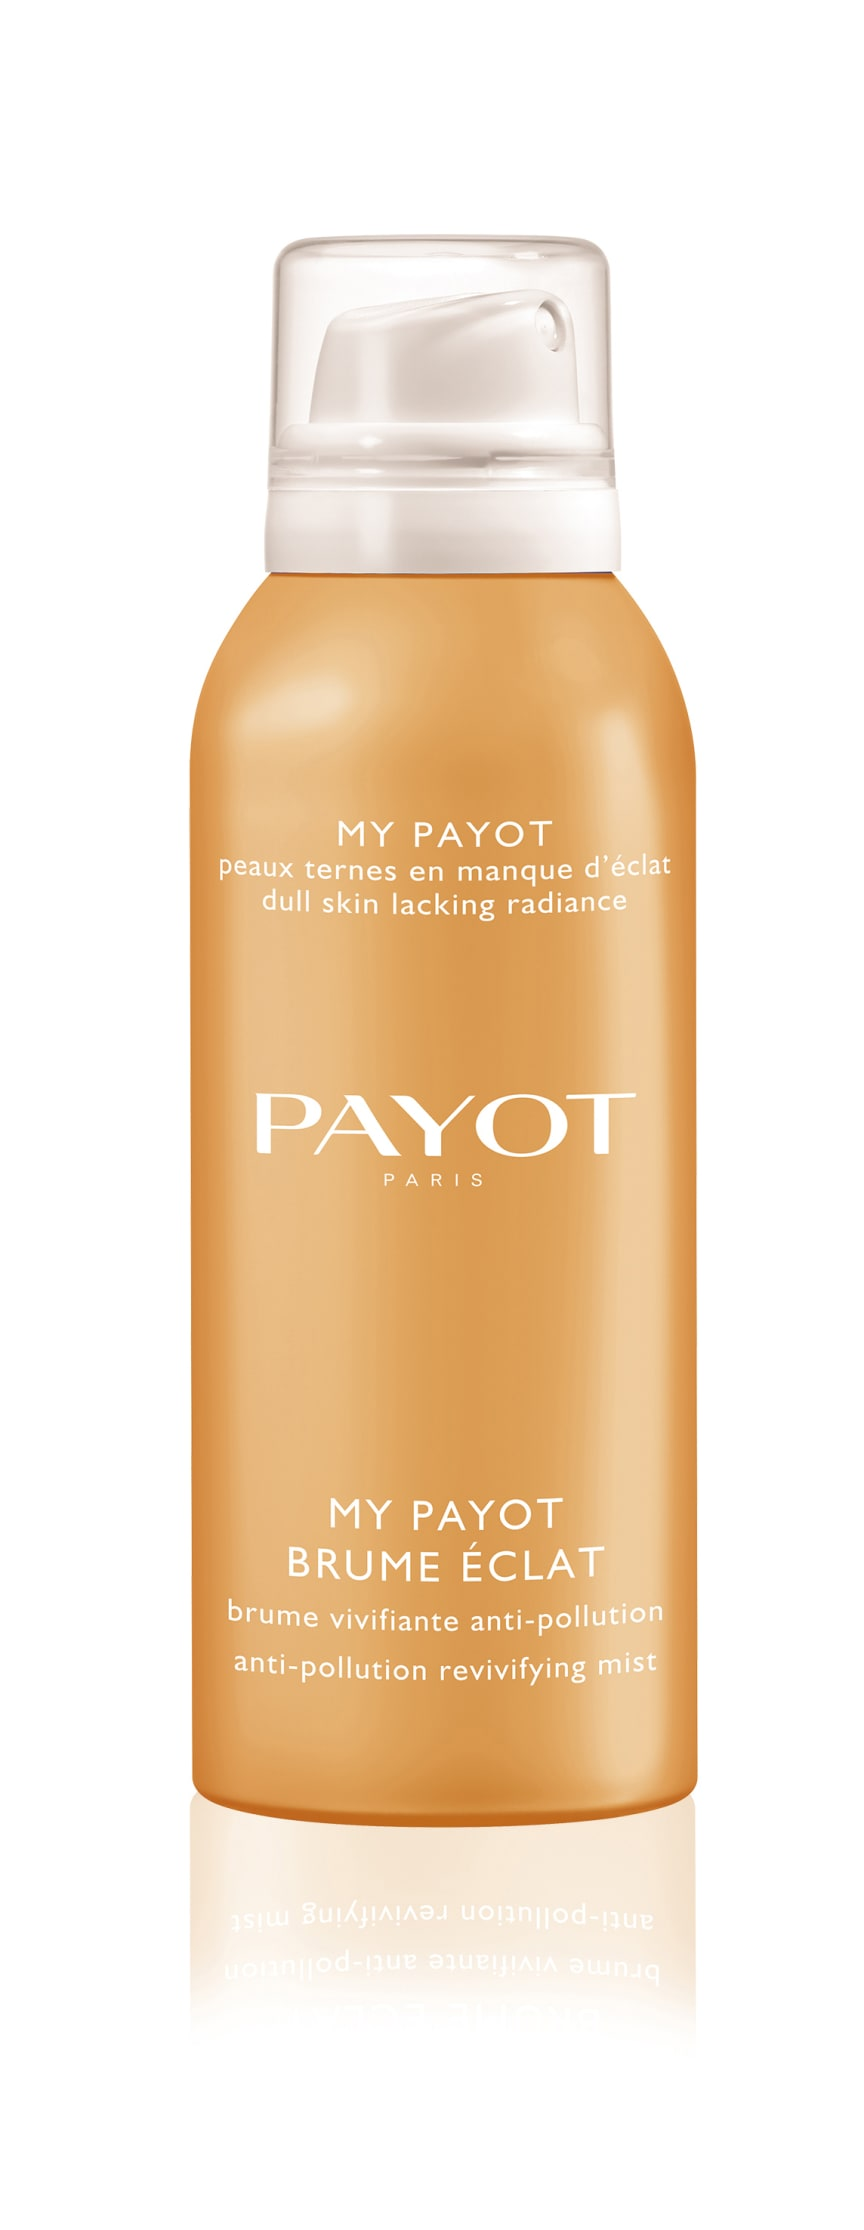 My Payot Brume